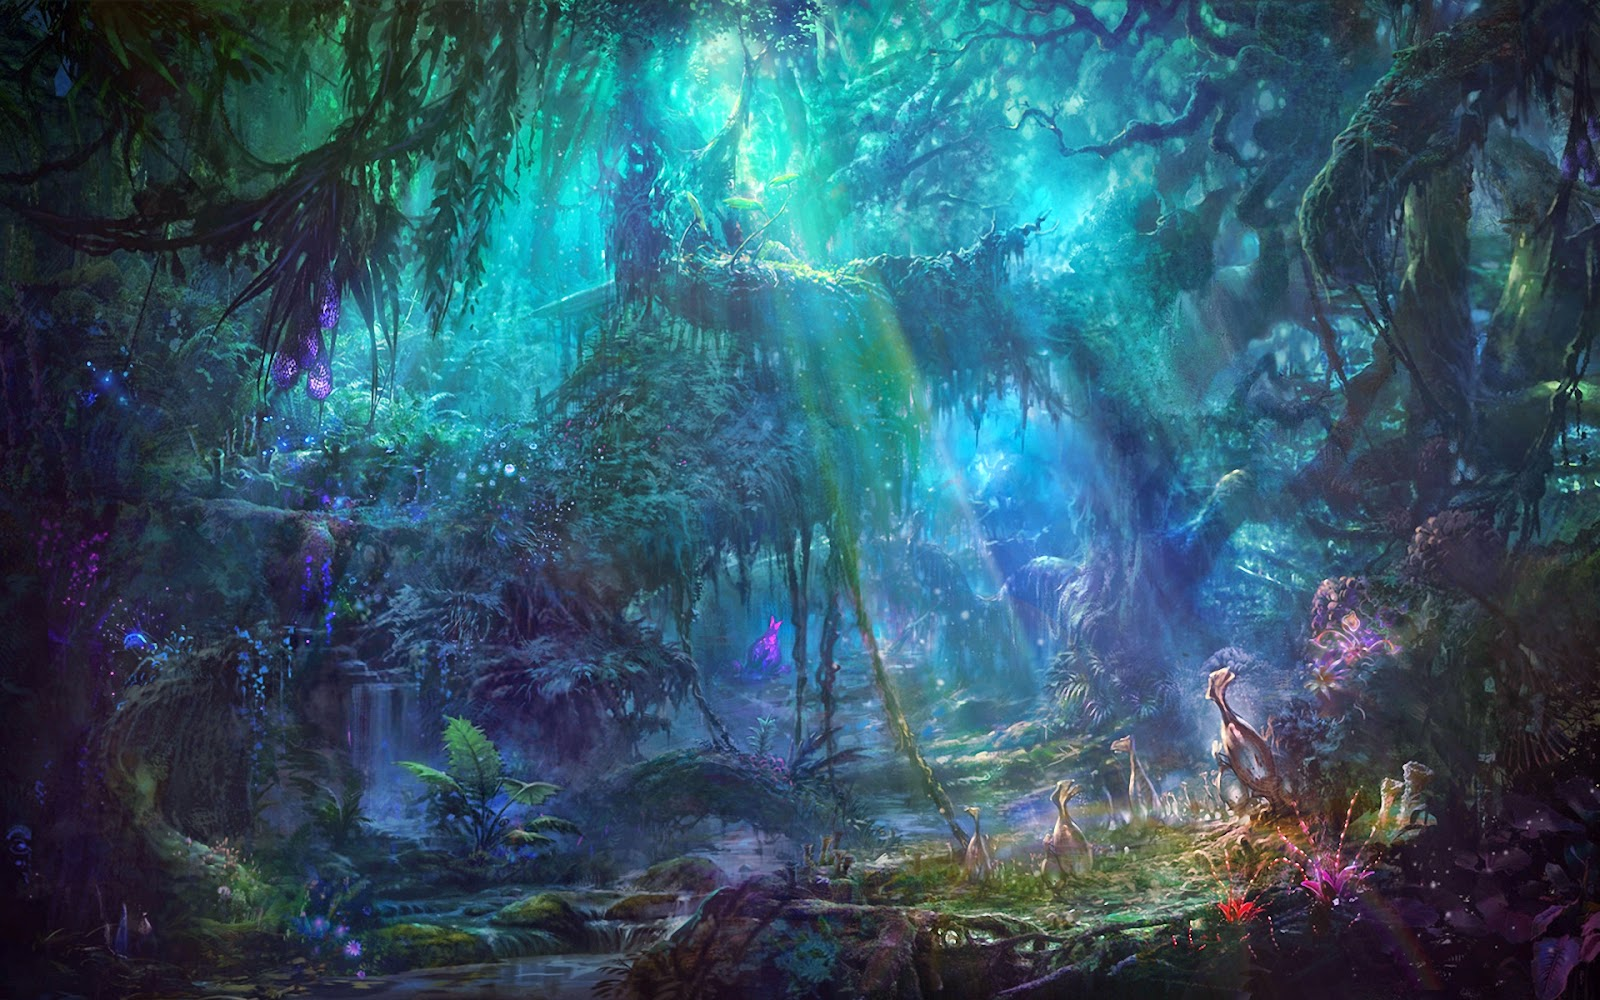 Hd Wallpapers: Beautiful Fantasy Hd Wallpapers Images